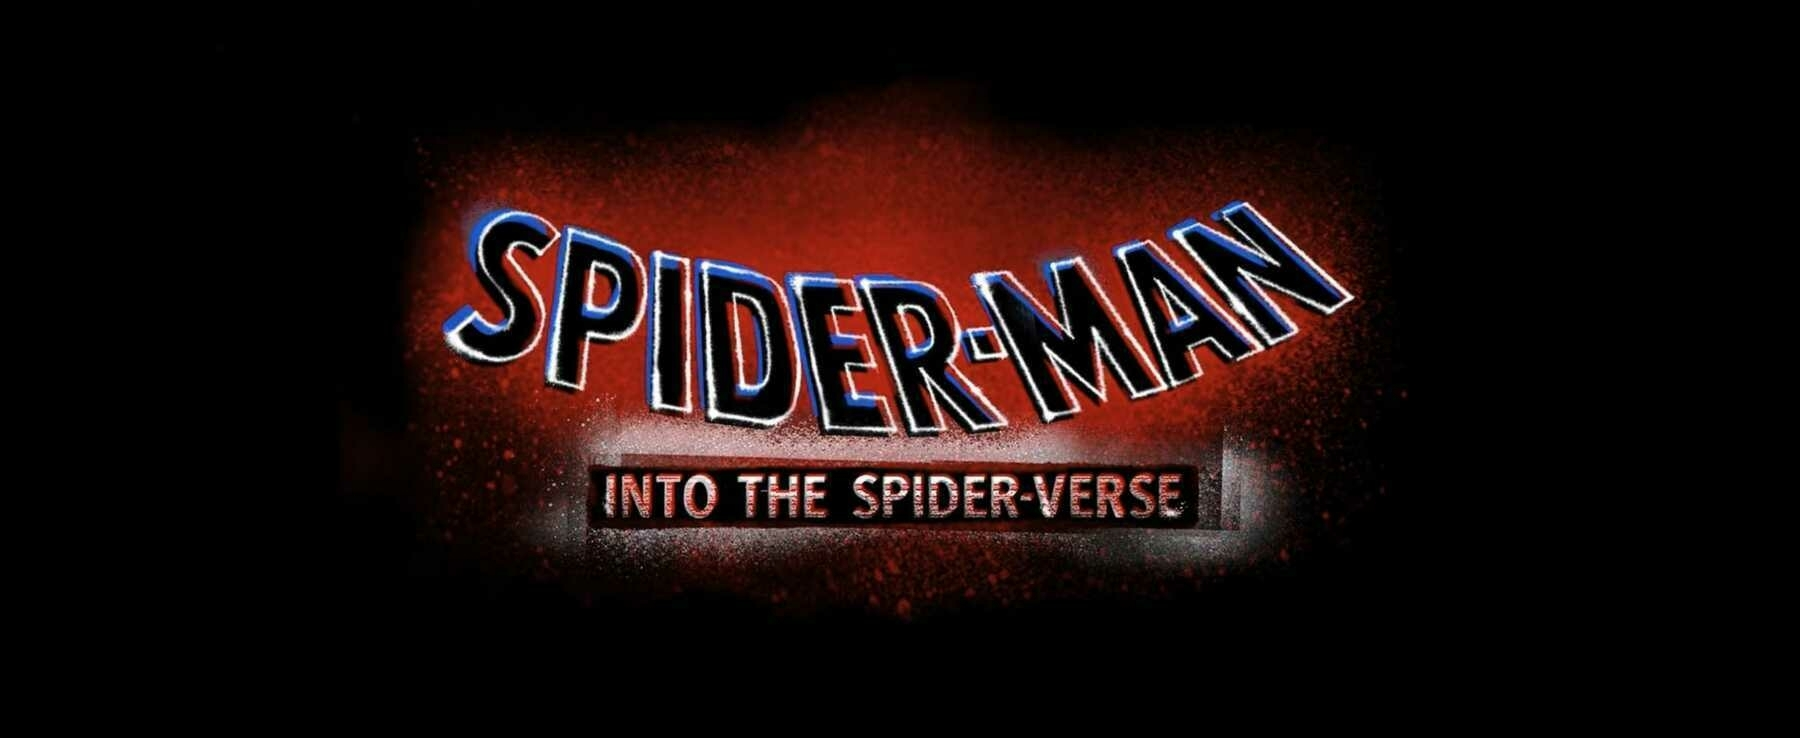 The title card for the film, Spider-Man: Into the Spider-Verse